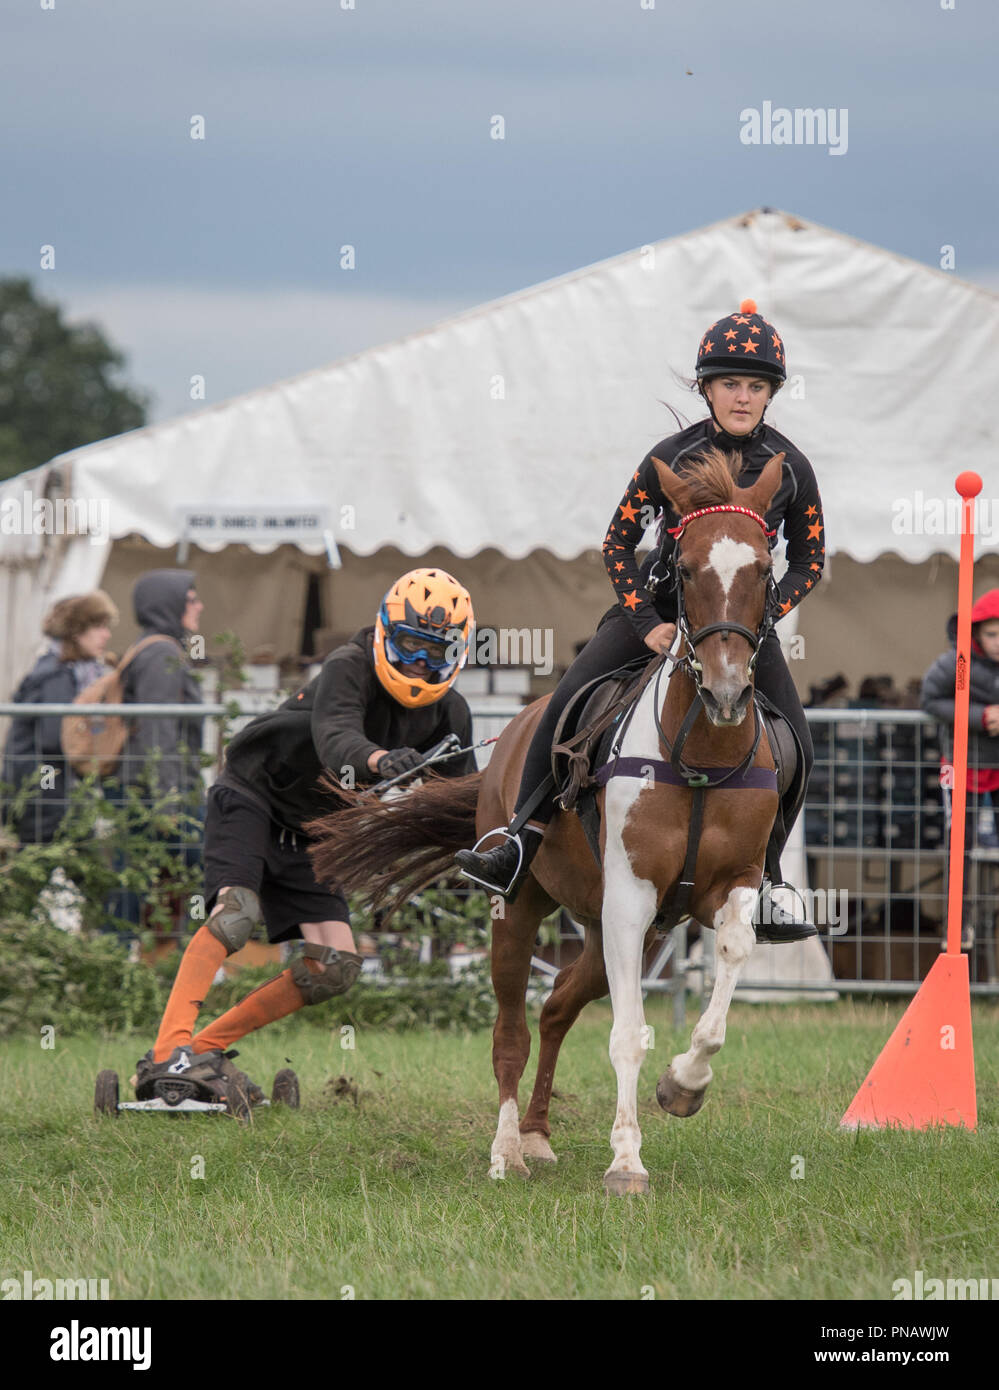 Cheshire Game & Country Fair 2018 - Horse Boarding Stock Photo